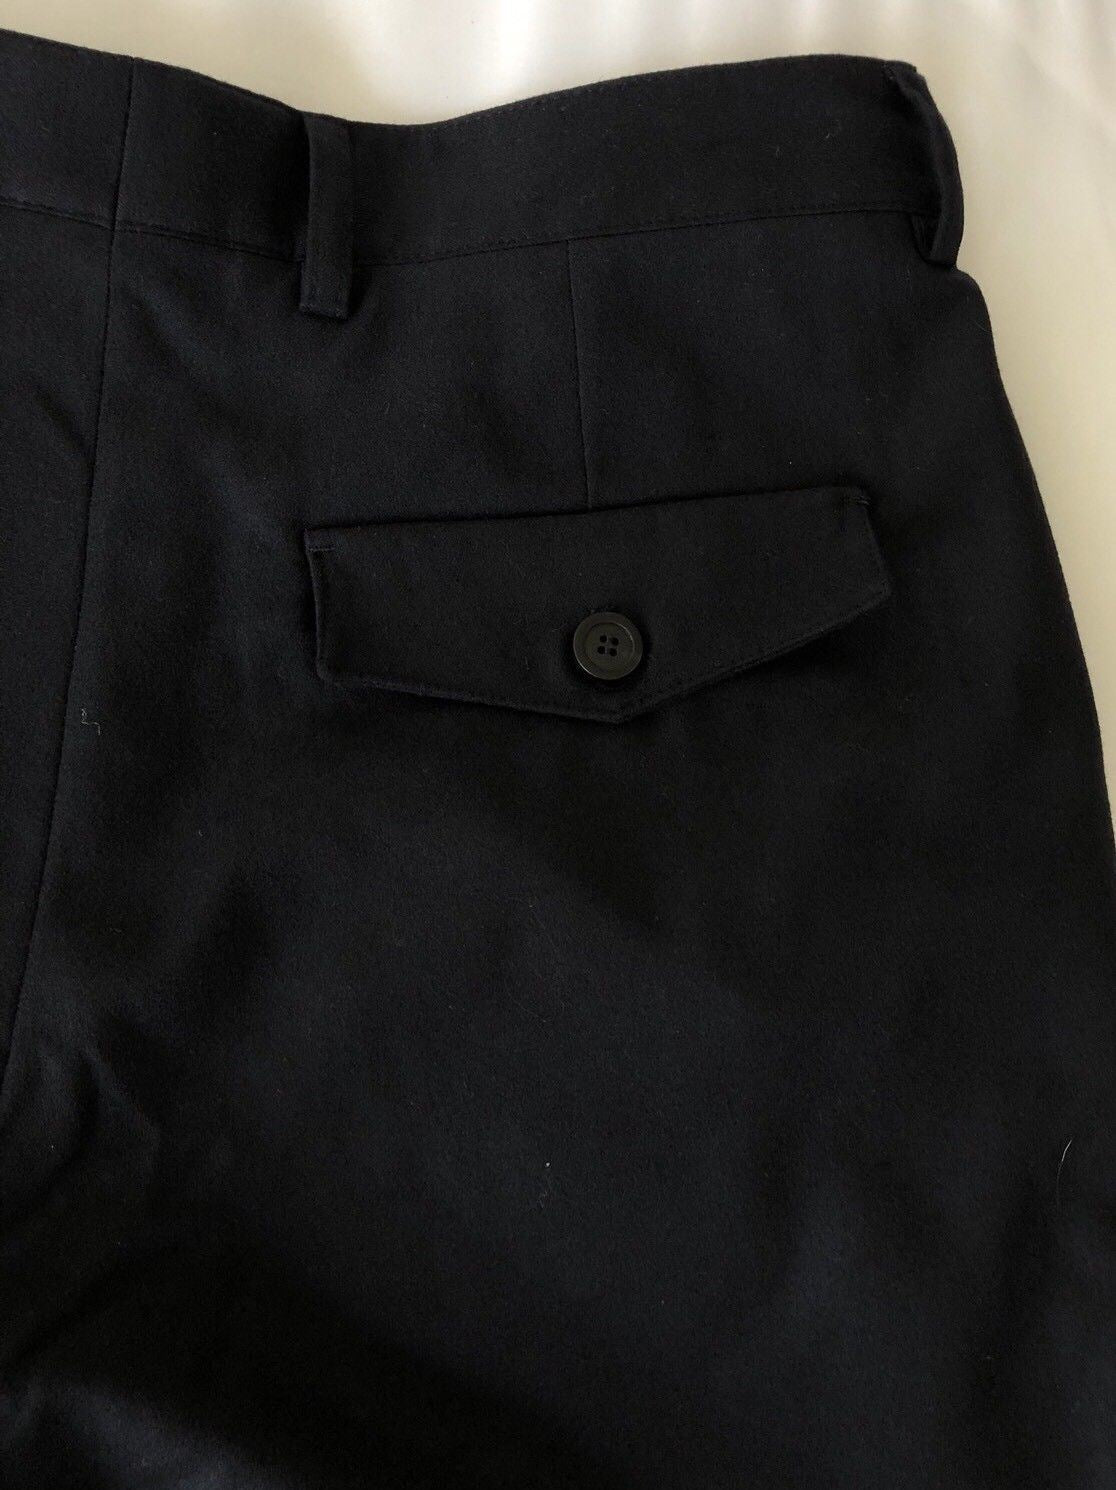 NWT $995 Giorgio Armani Mens Wool Dress Pants Size 38 US (54 Euro) Italy USP034 - BAYSUPERSTORE